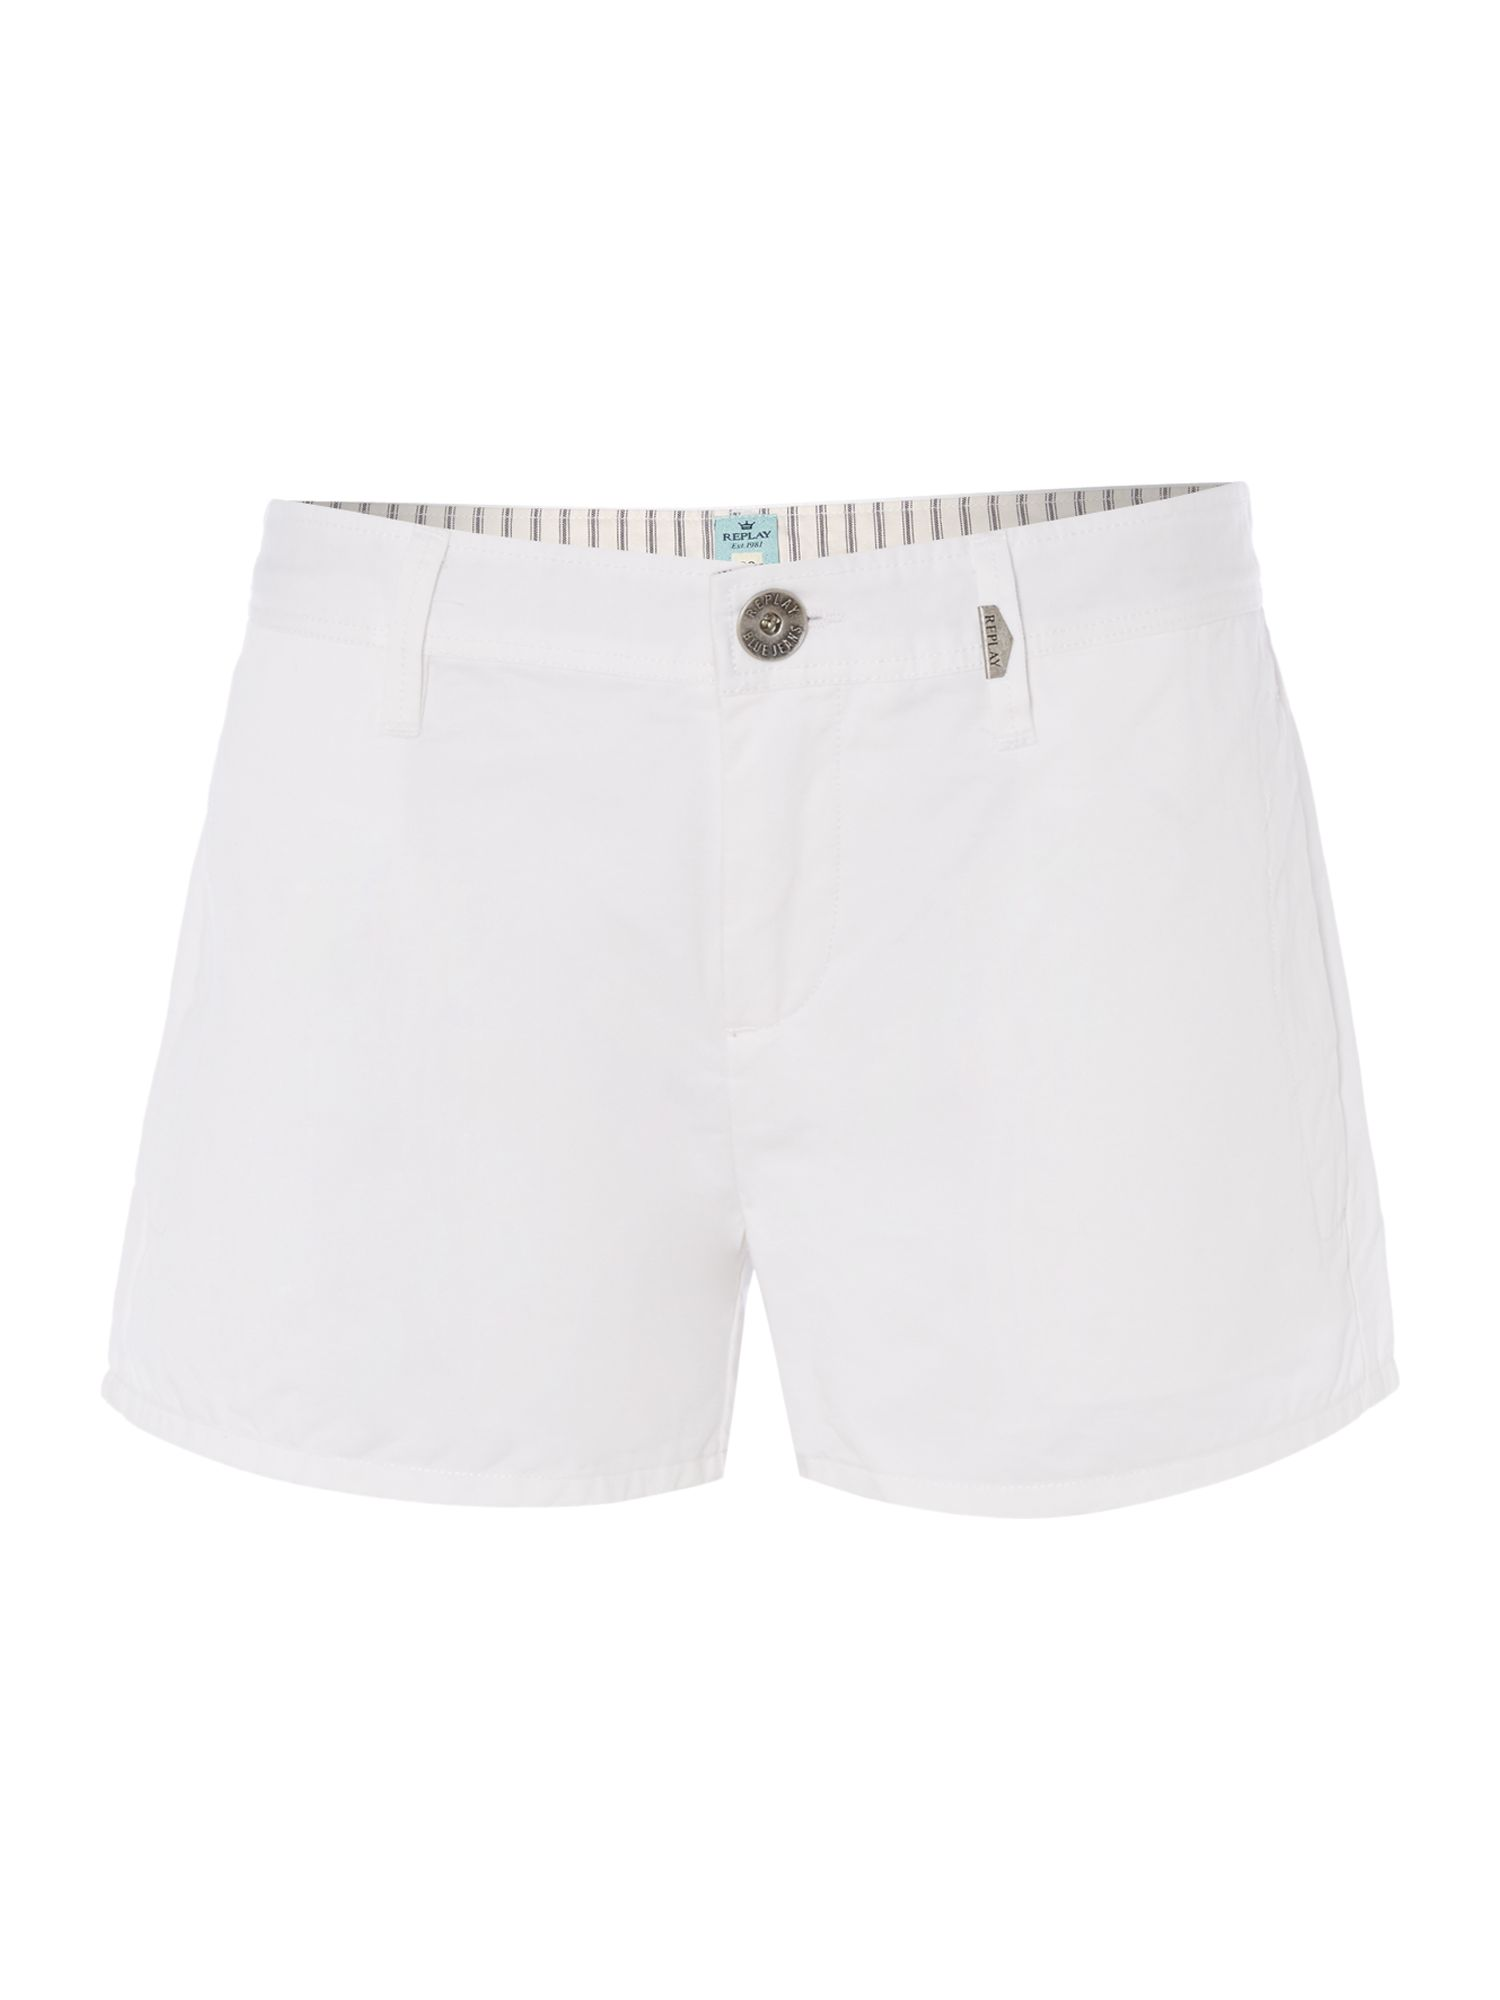 Chino short in cotton